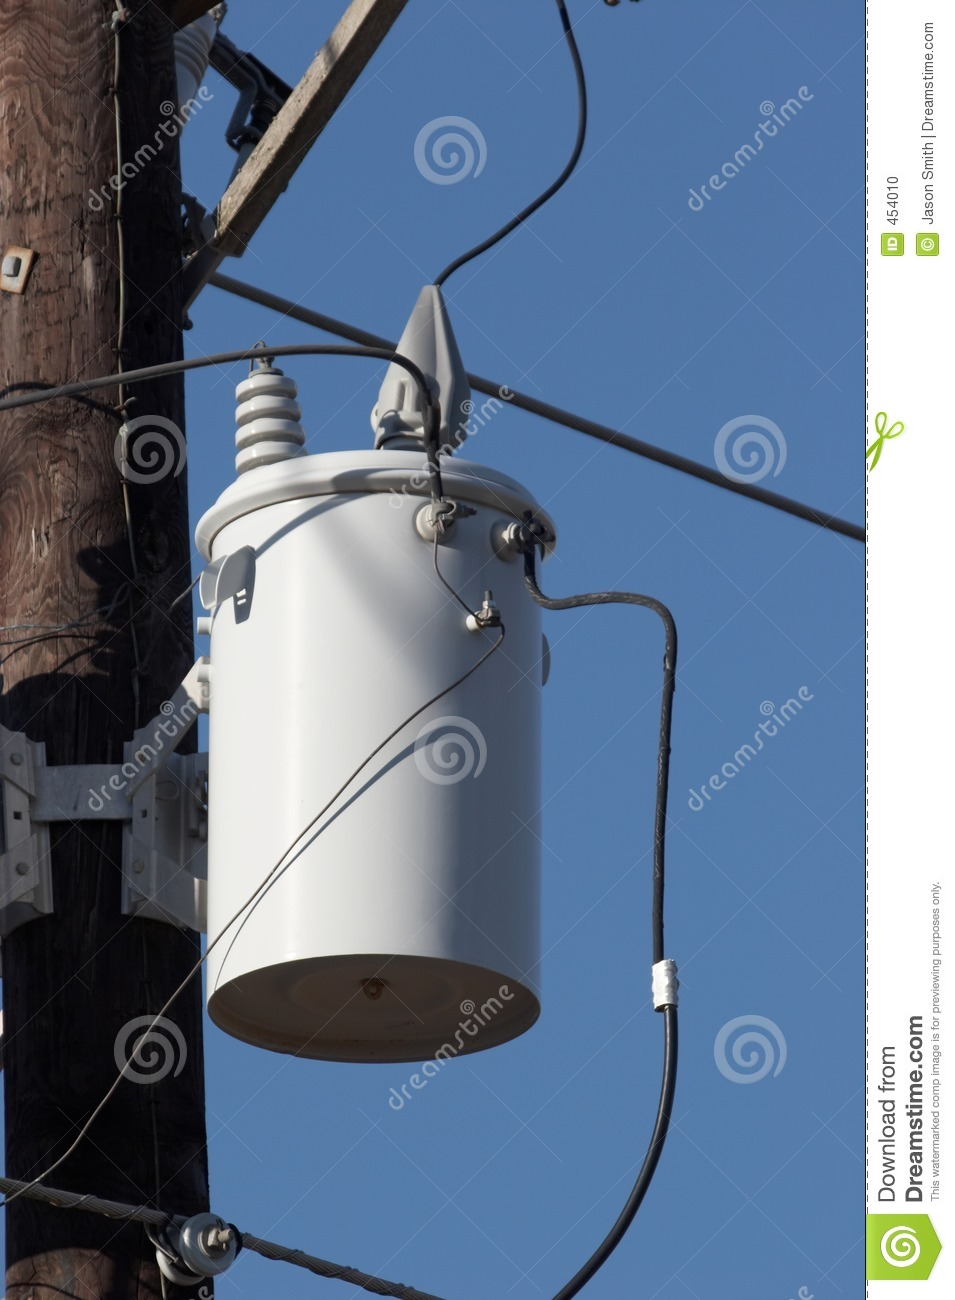 Download Transformers stock photo. Image of line, pole, power, high - 454010